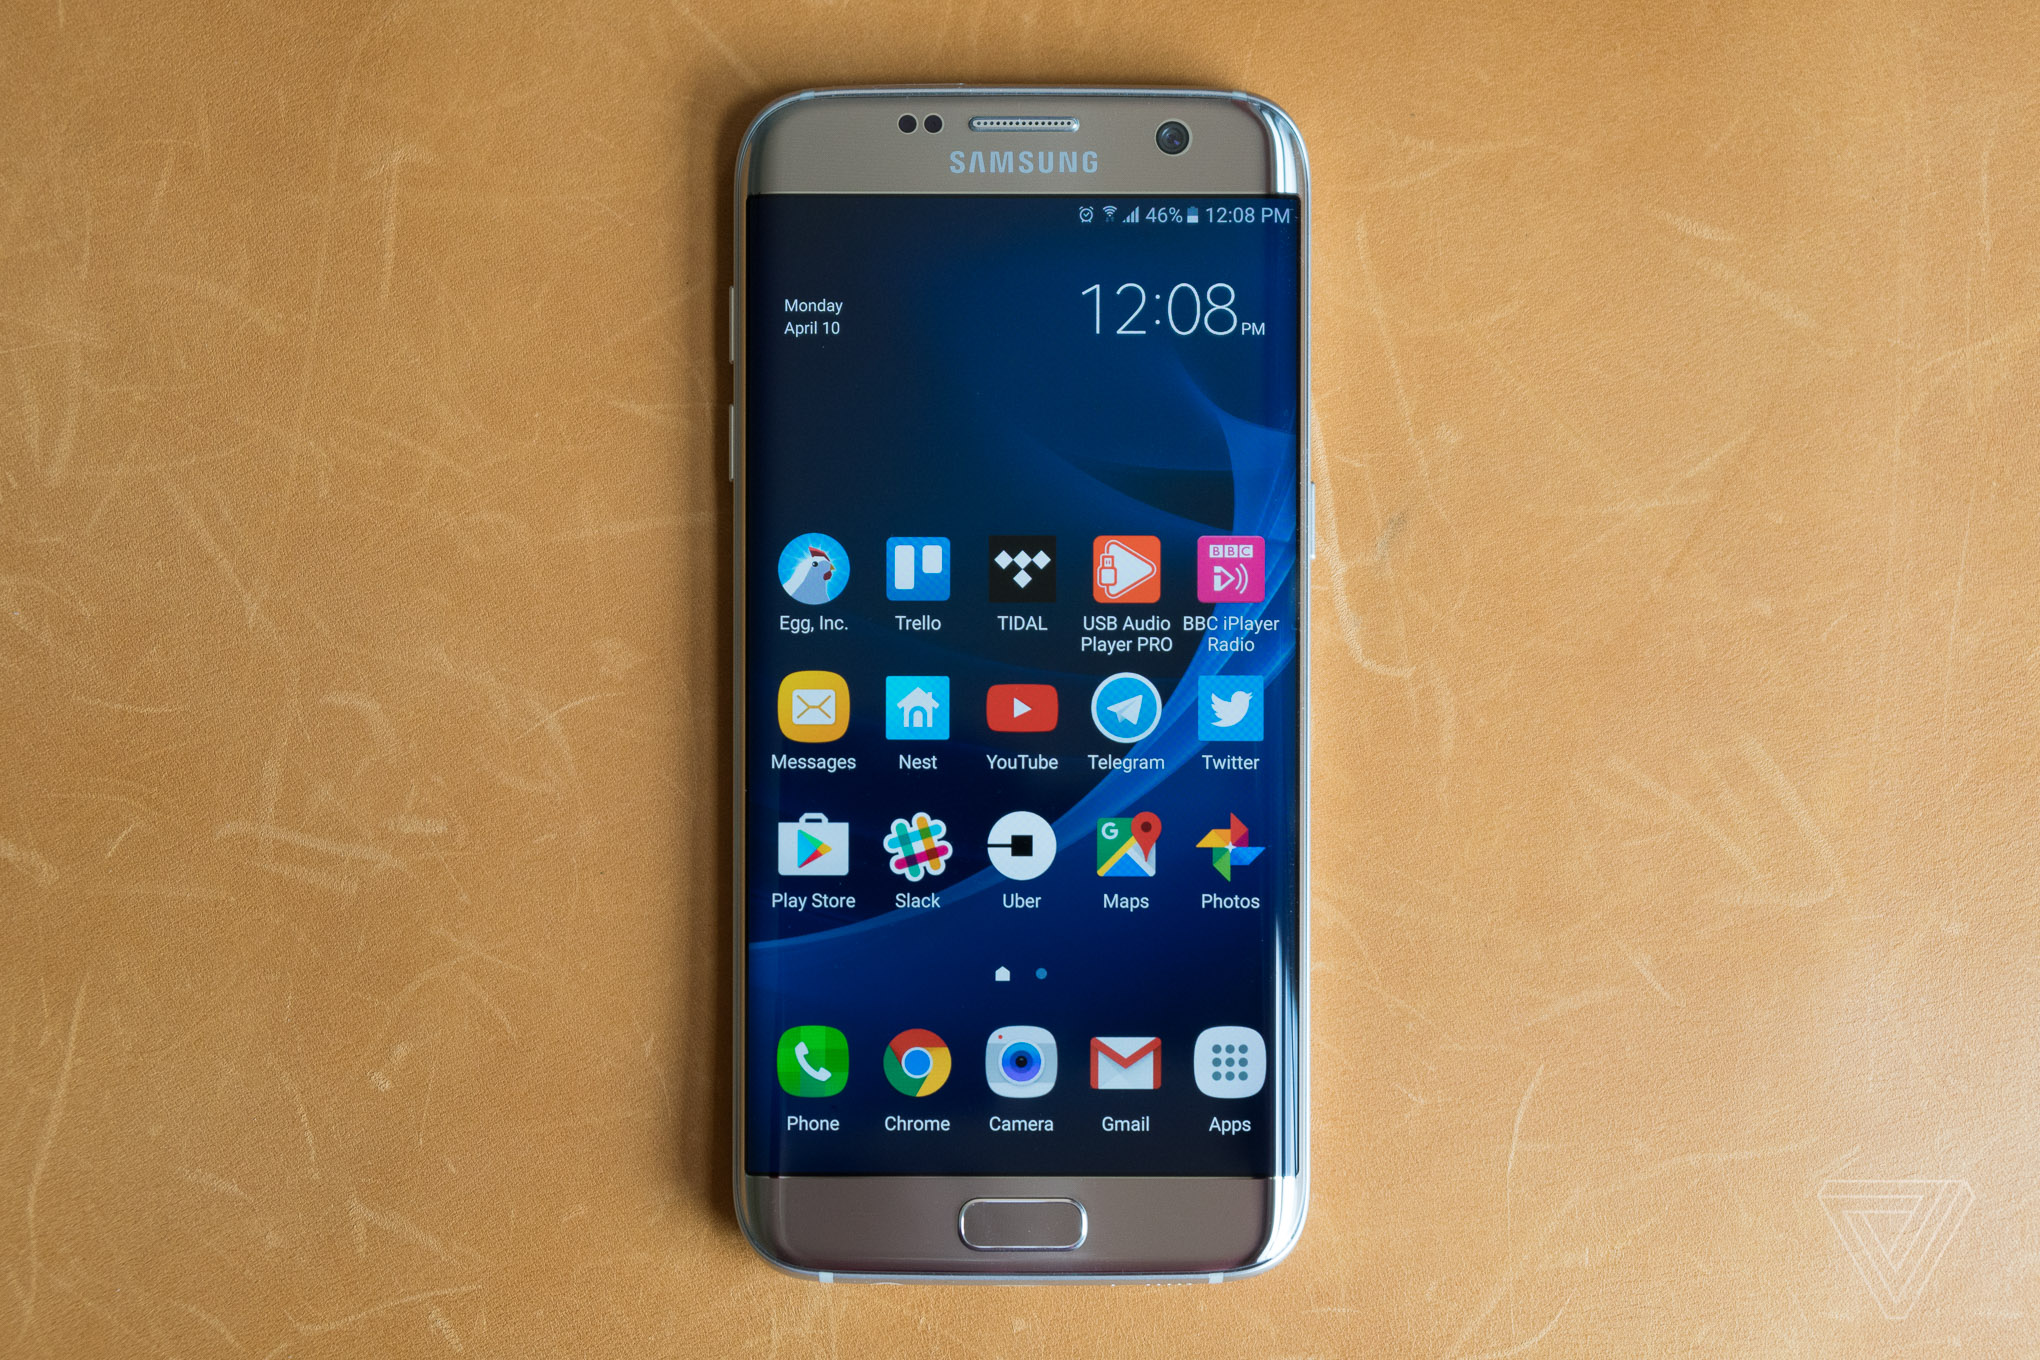 Samsung's Galaxy S7 Edge is still a great phone, and now